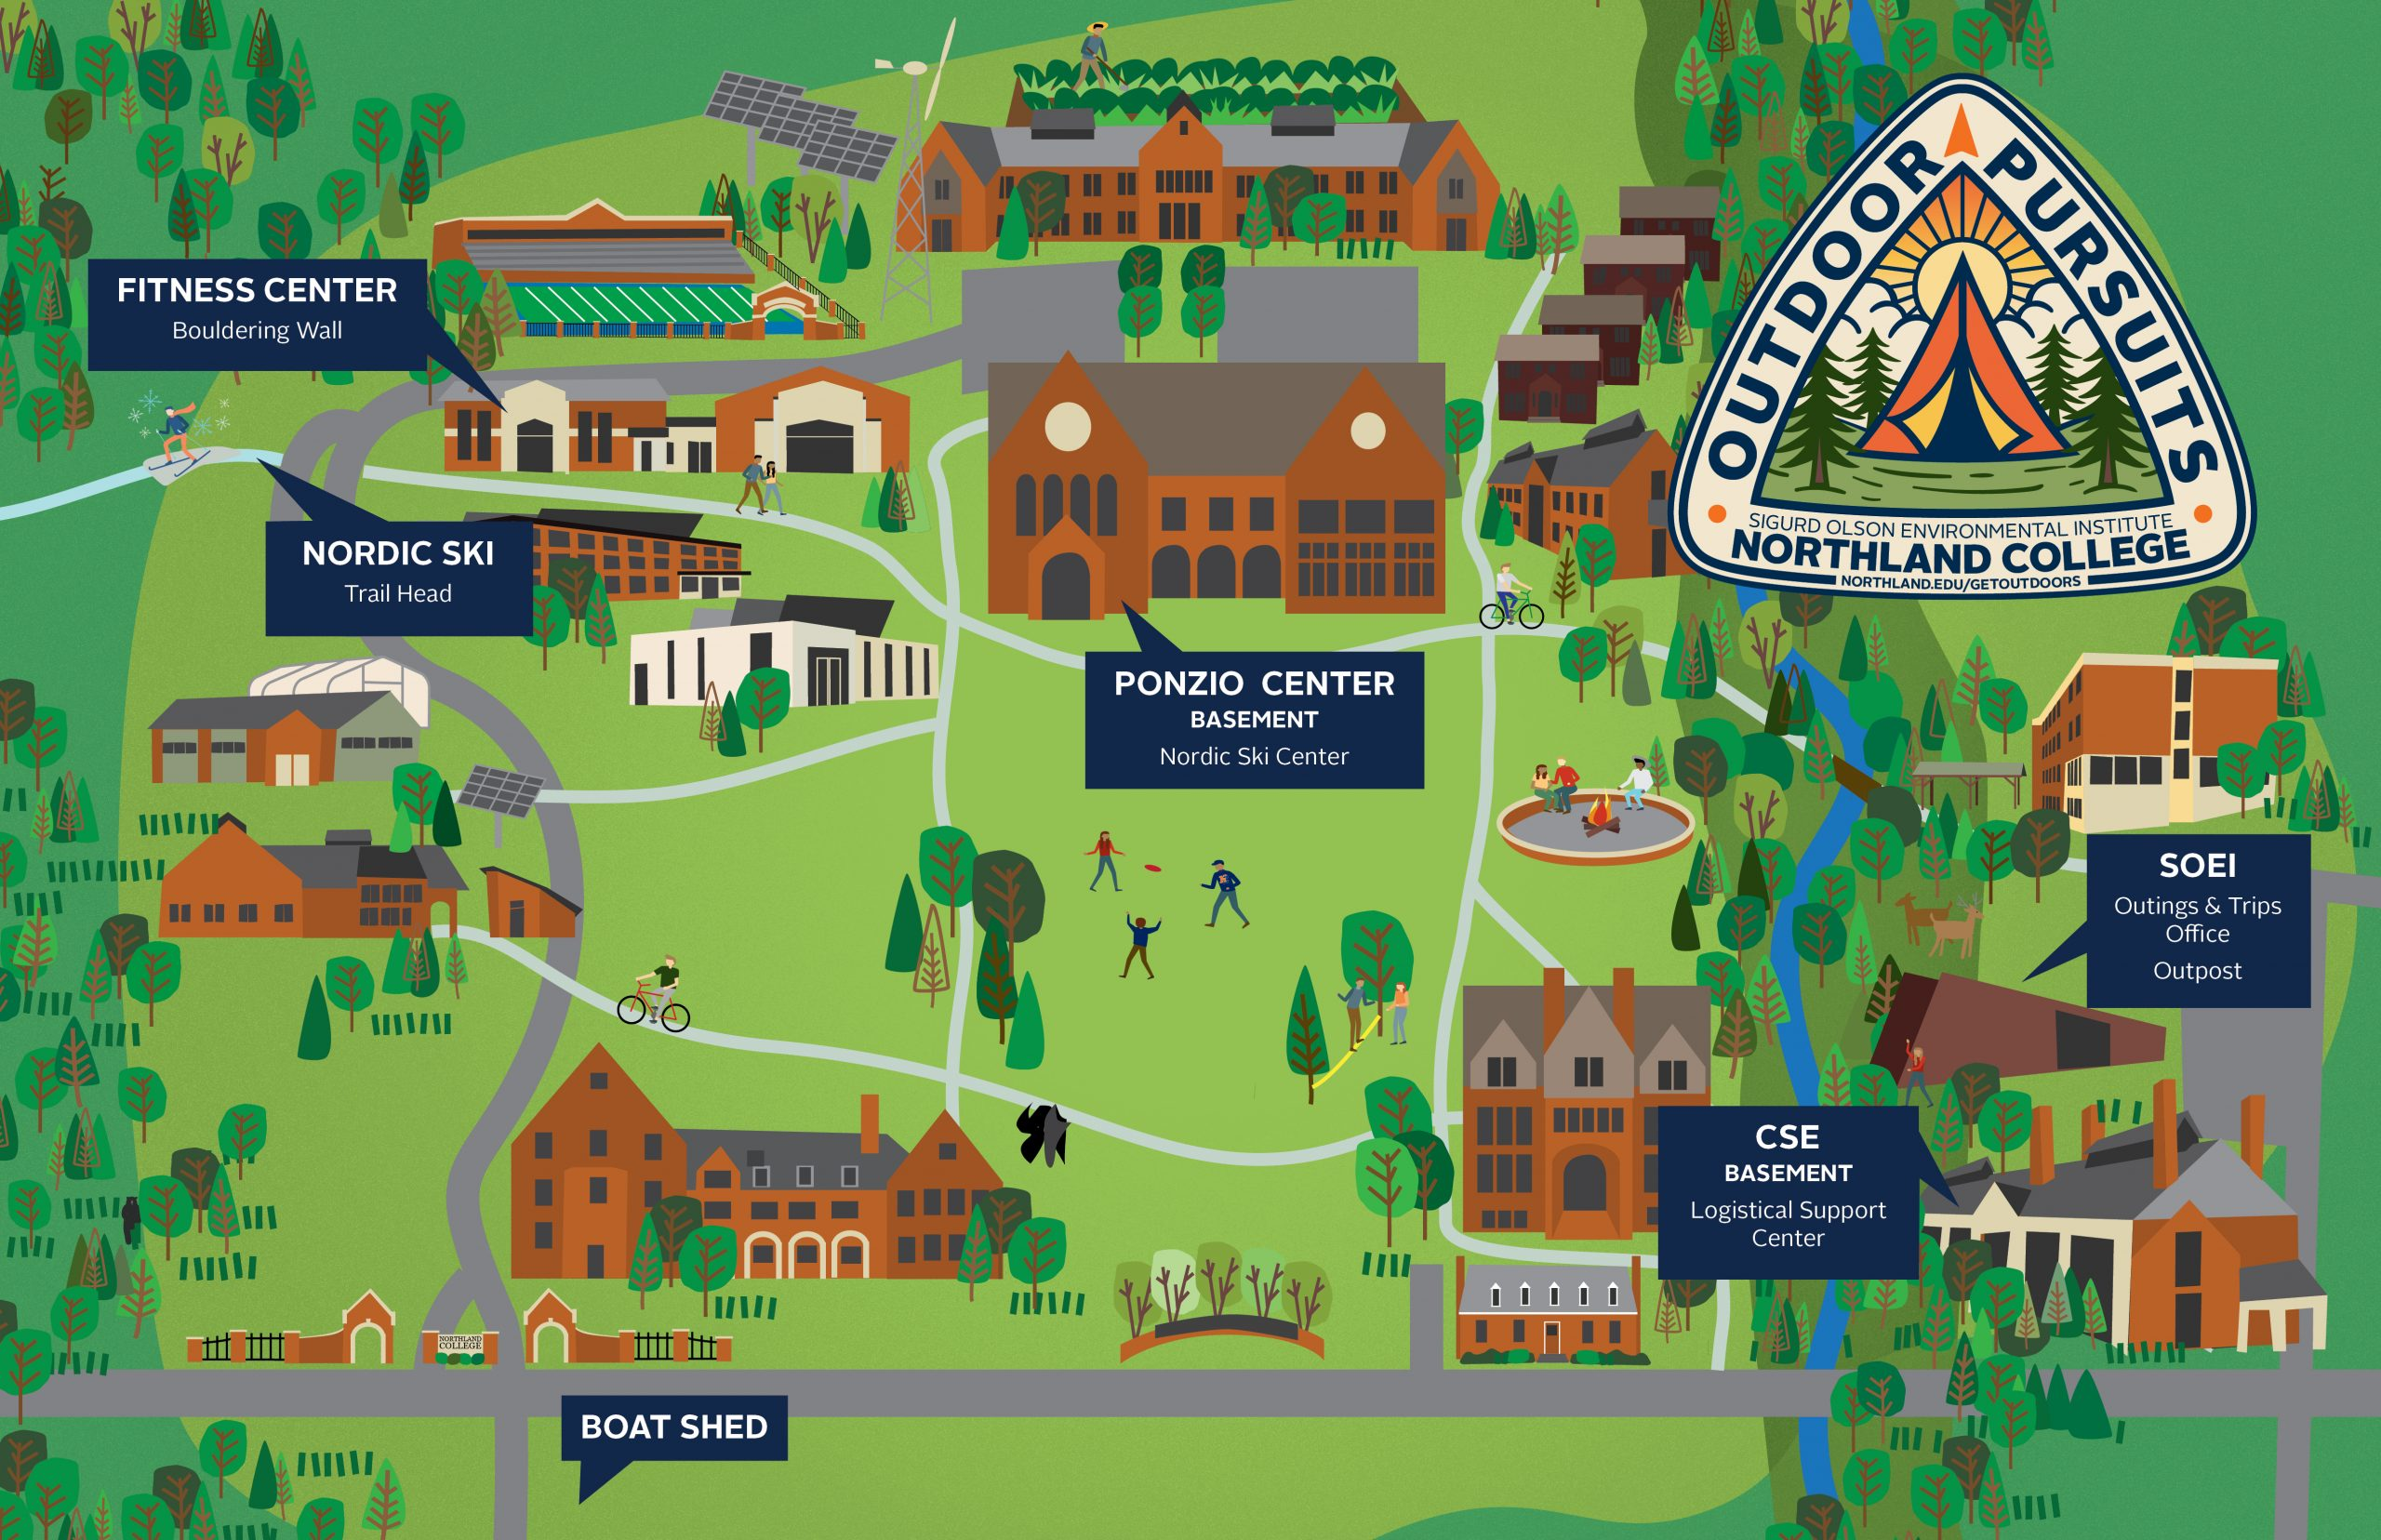 Outdoor Pursuits map